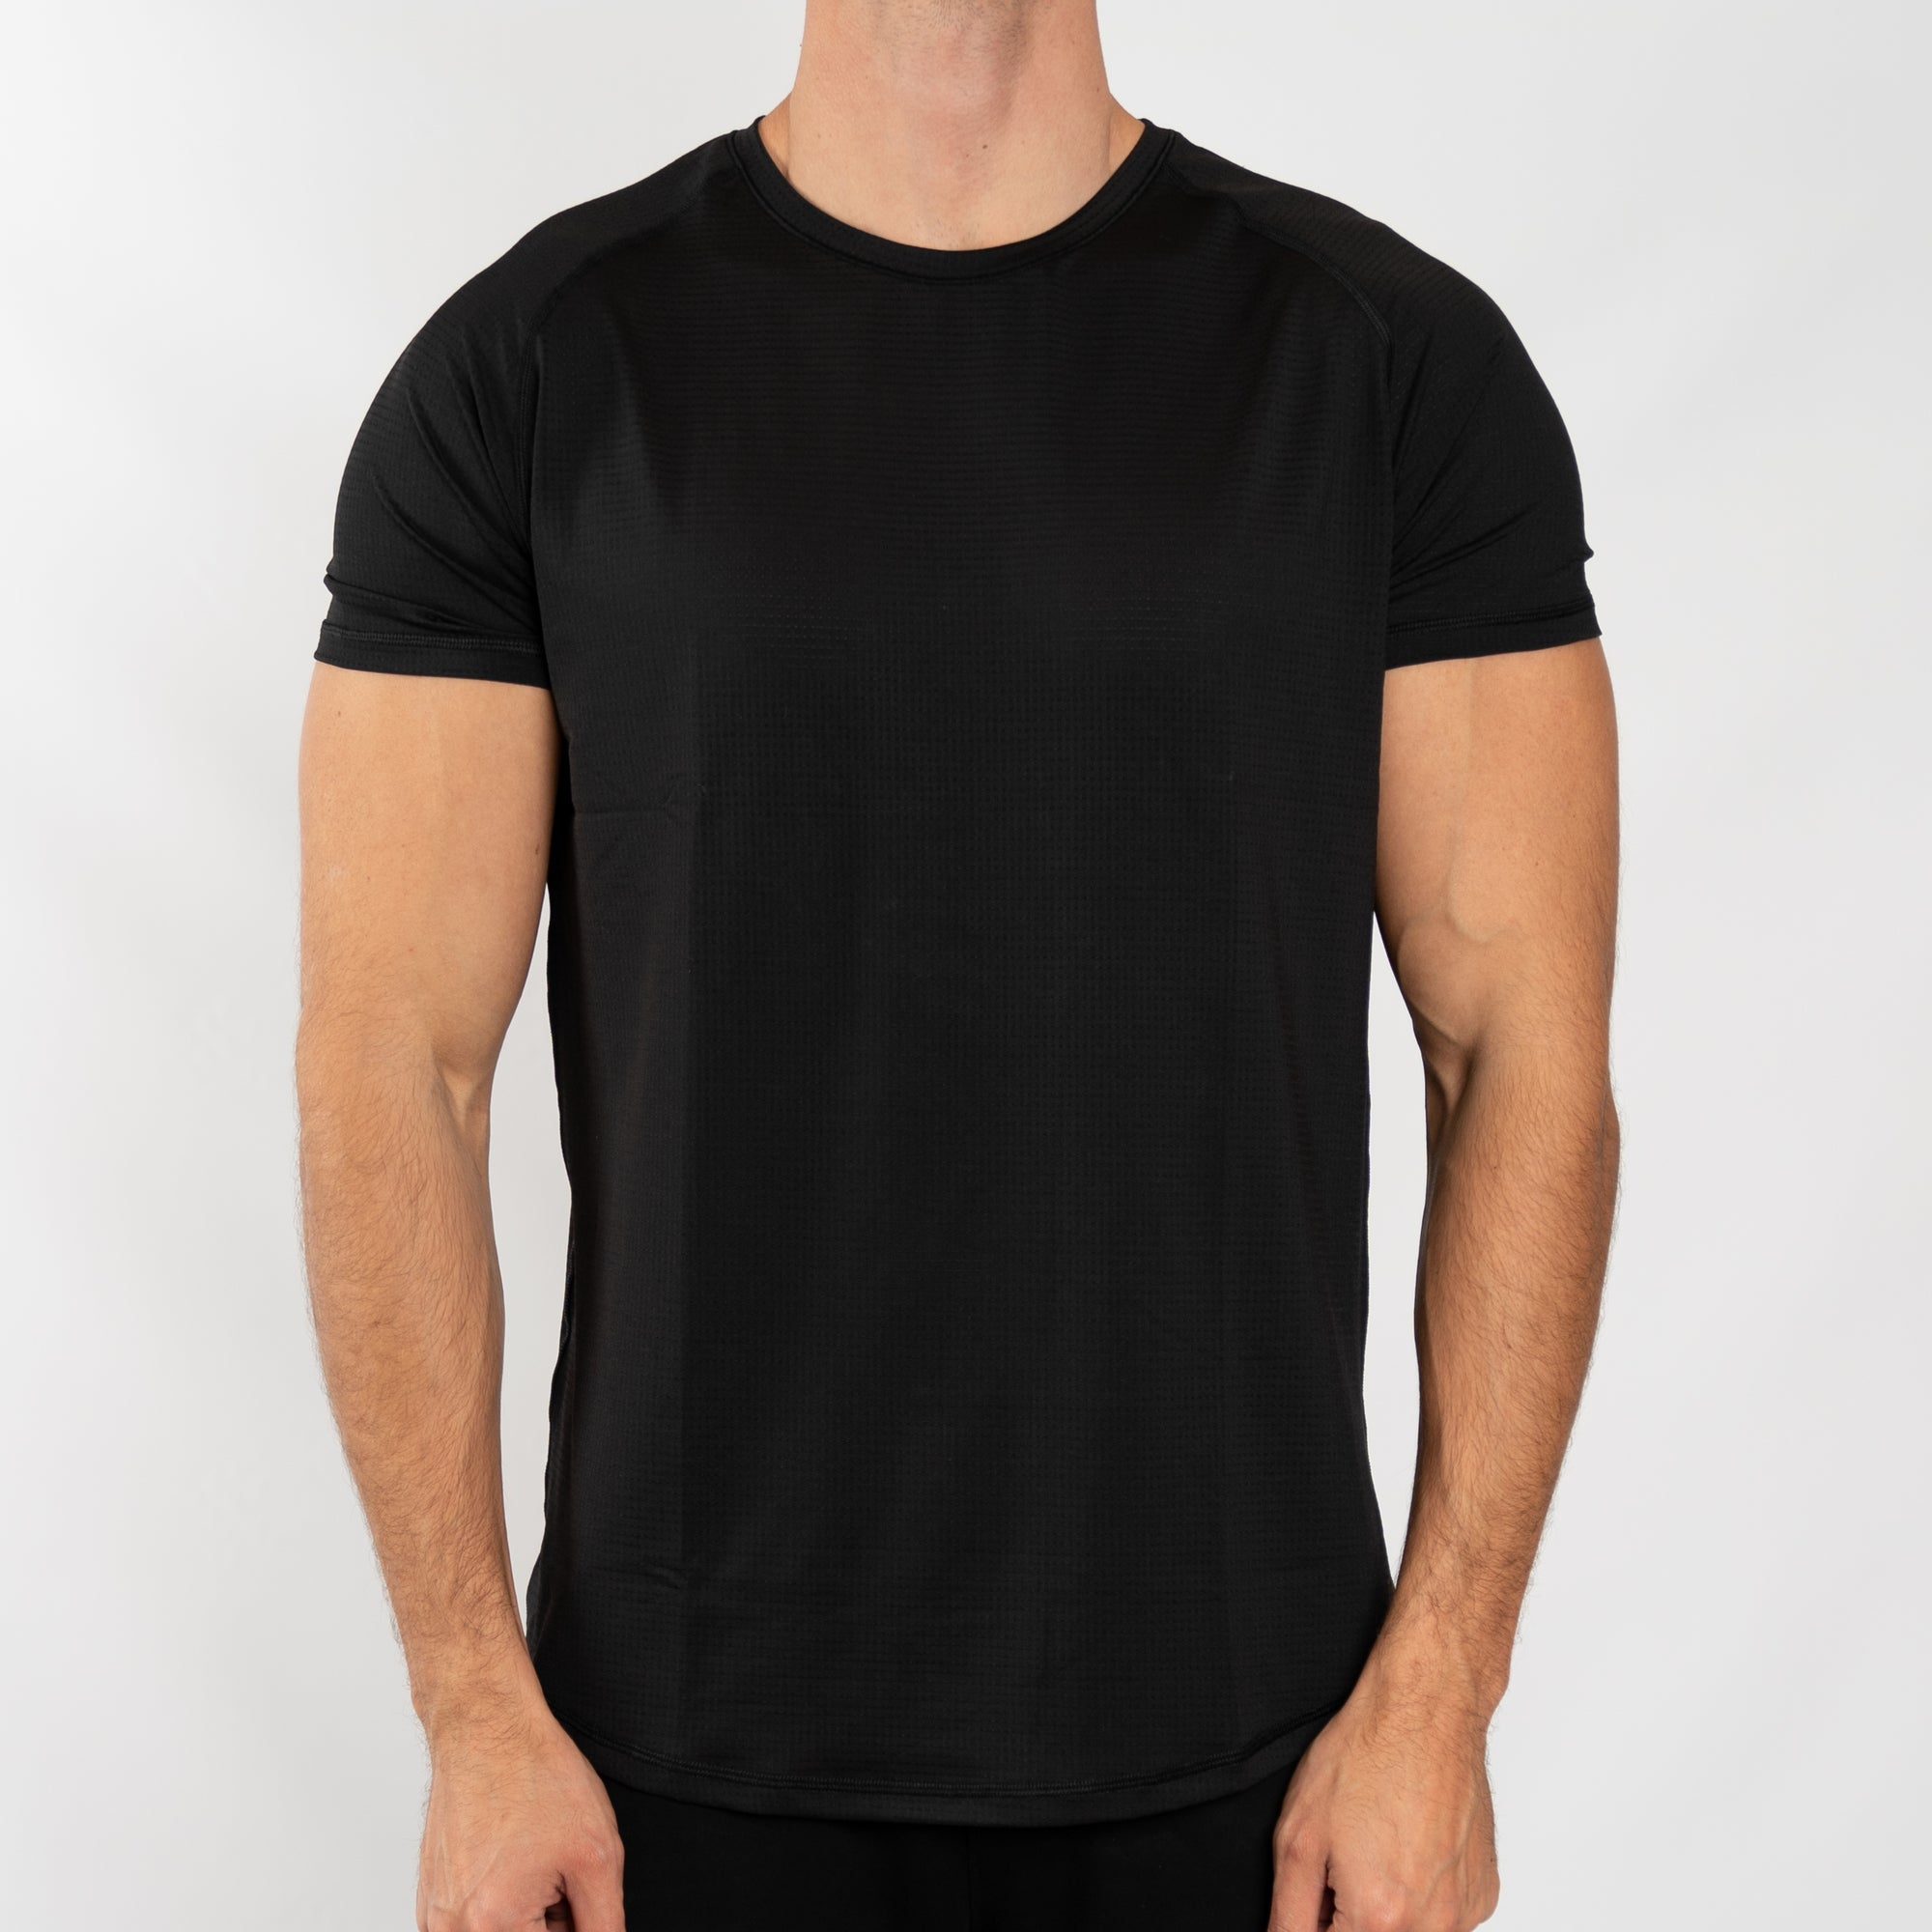 Men's Performance Tee in Black - Southern Athletica